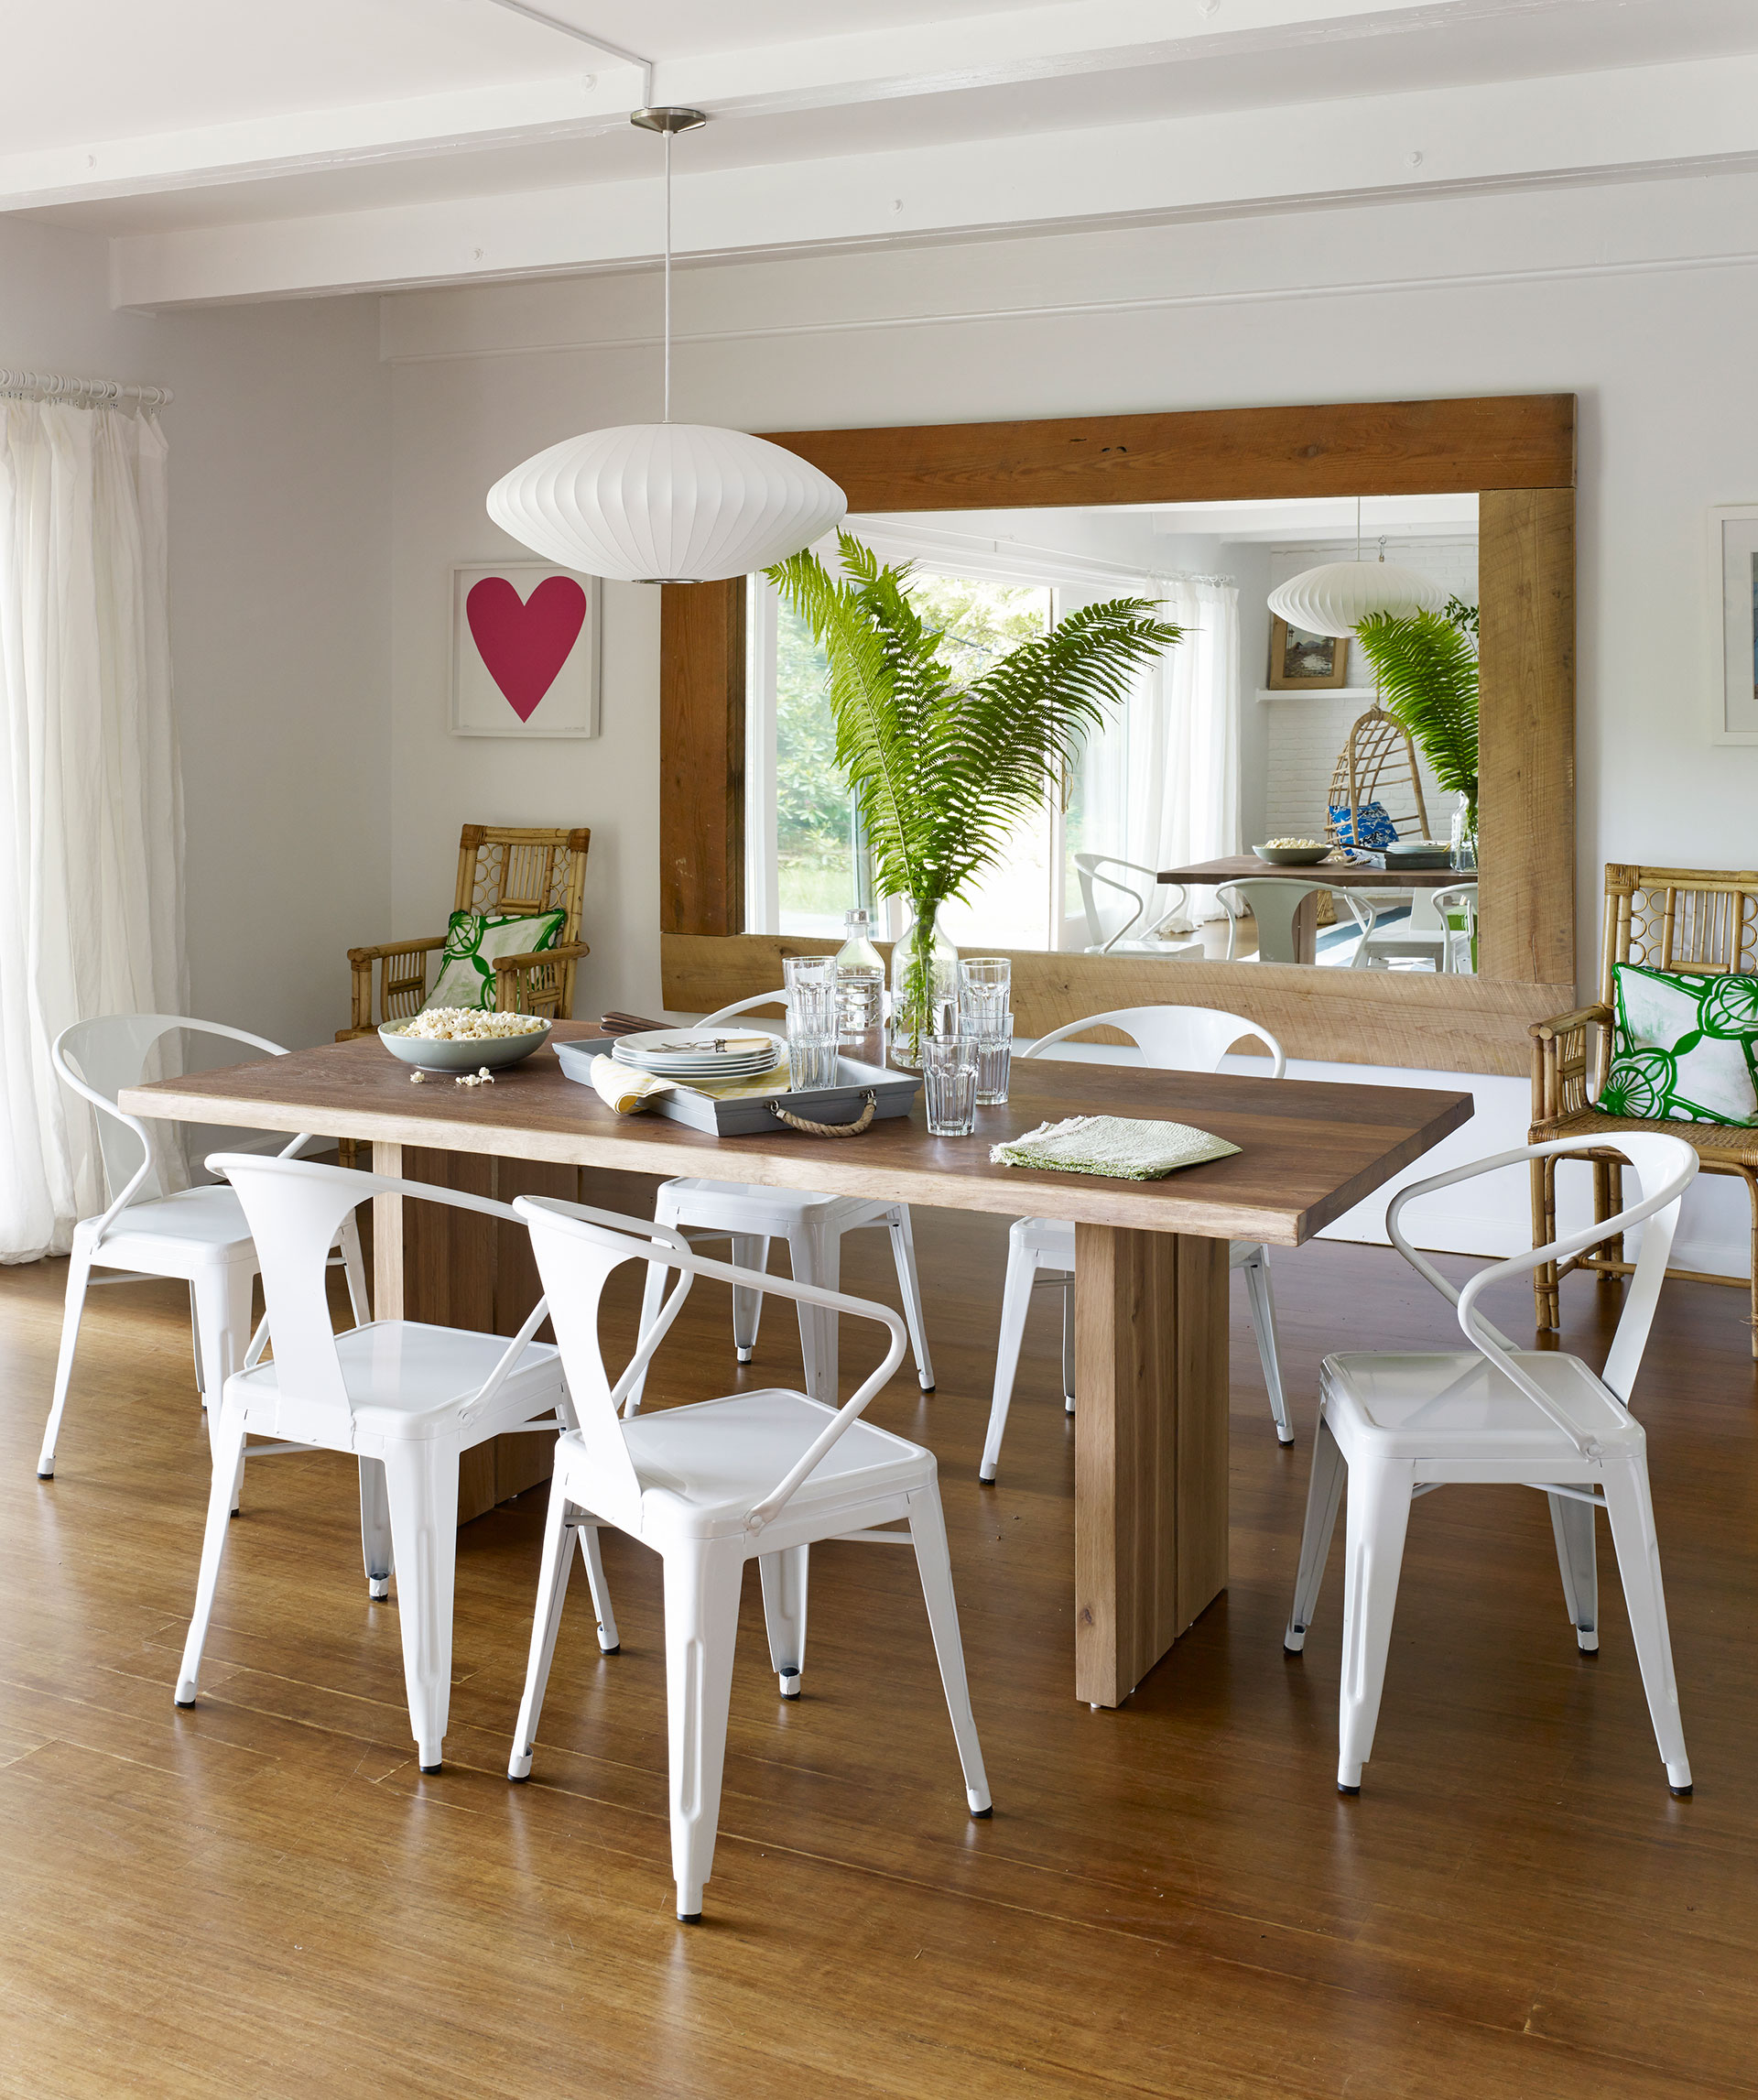 85 best dining room decorating ideas - country dining room decor BWQWBEQ